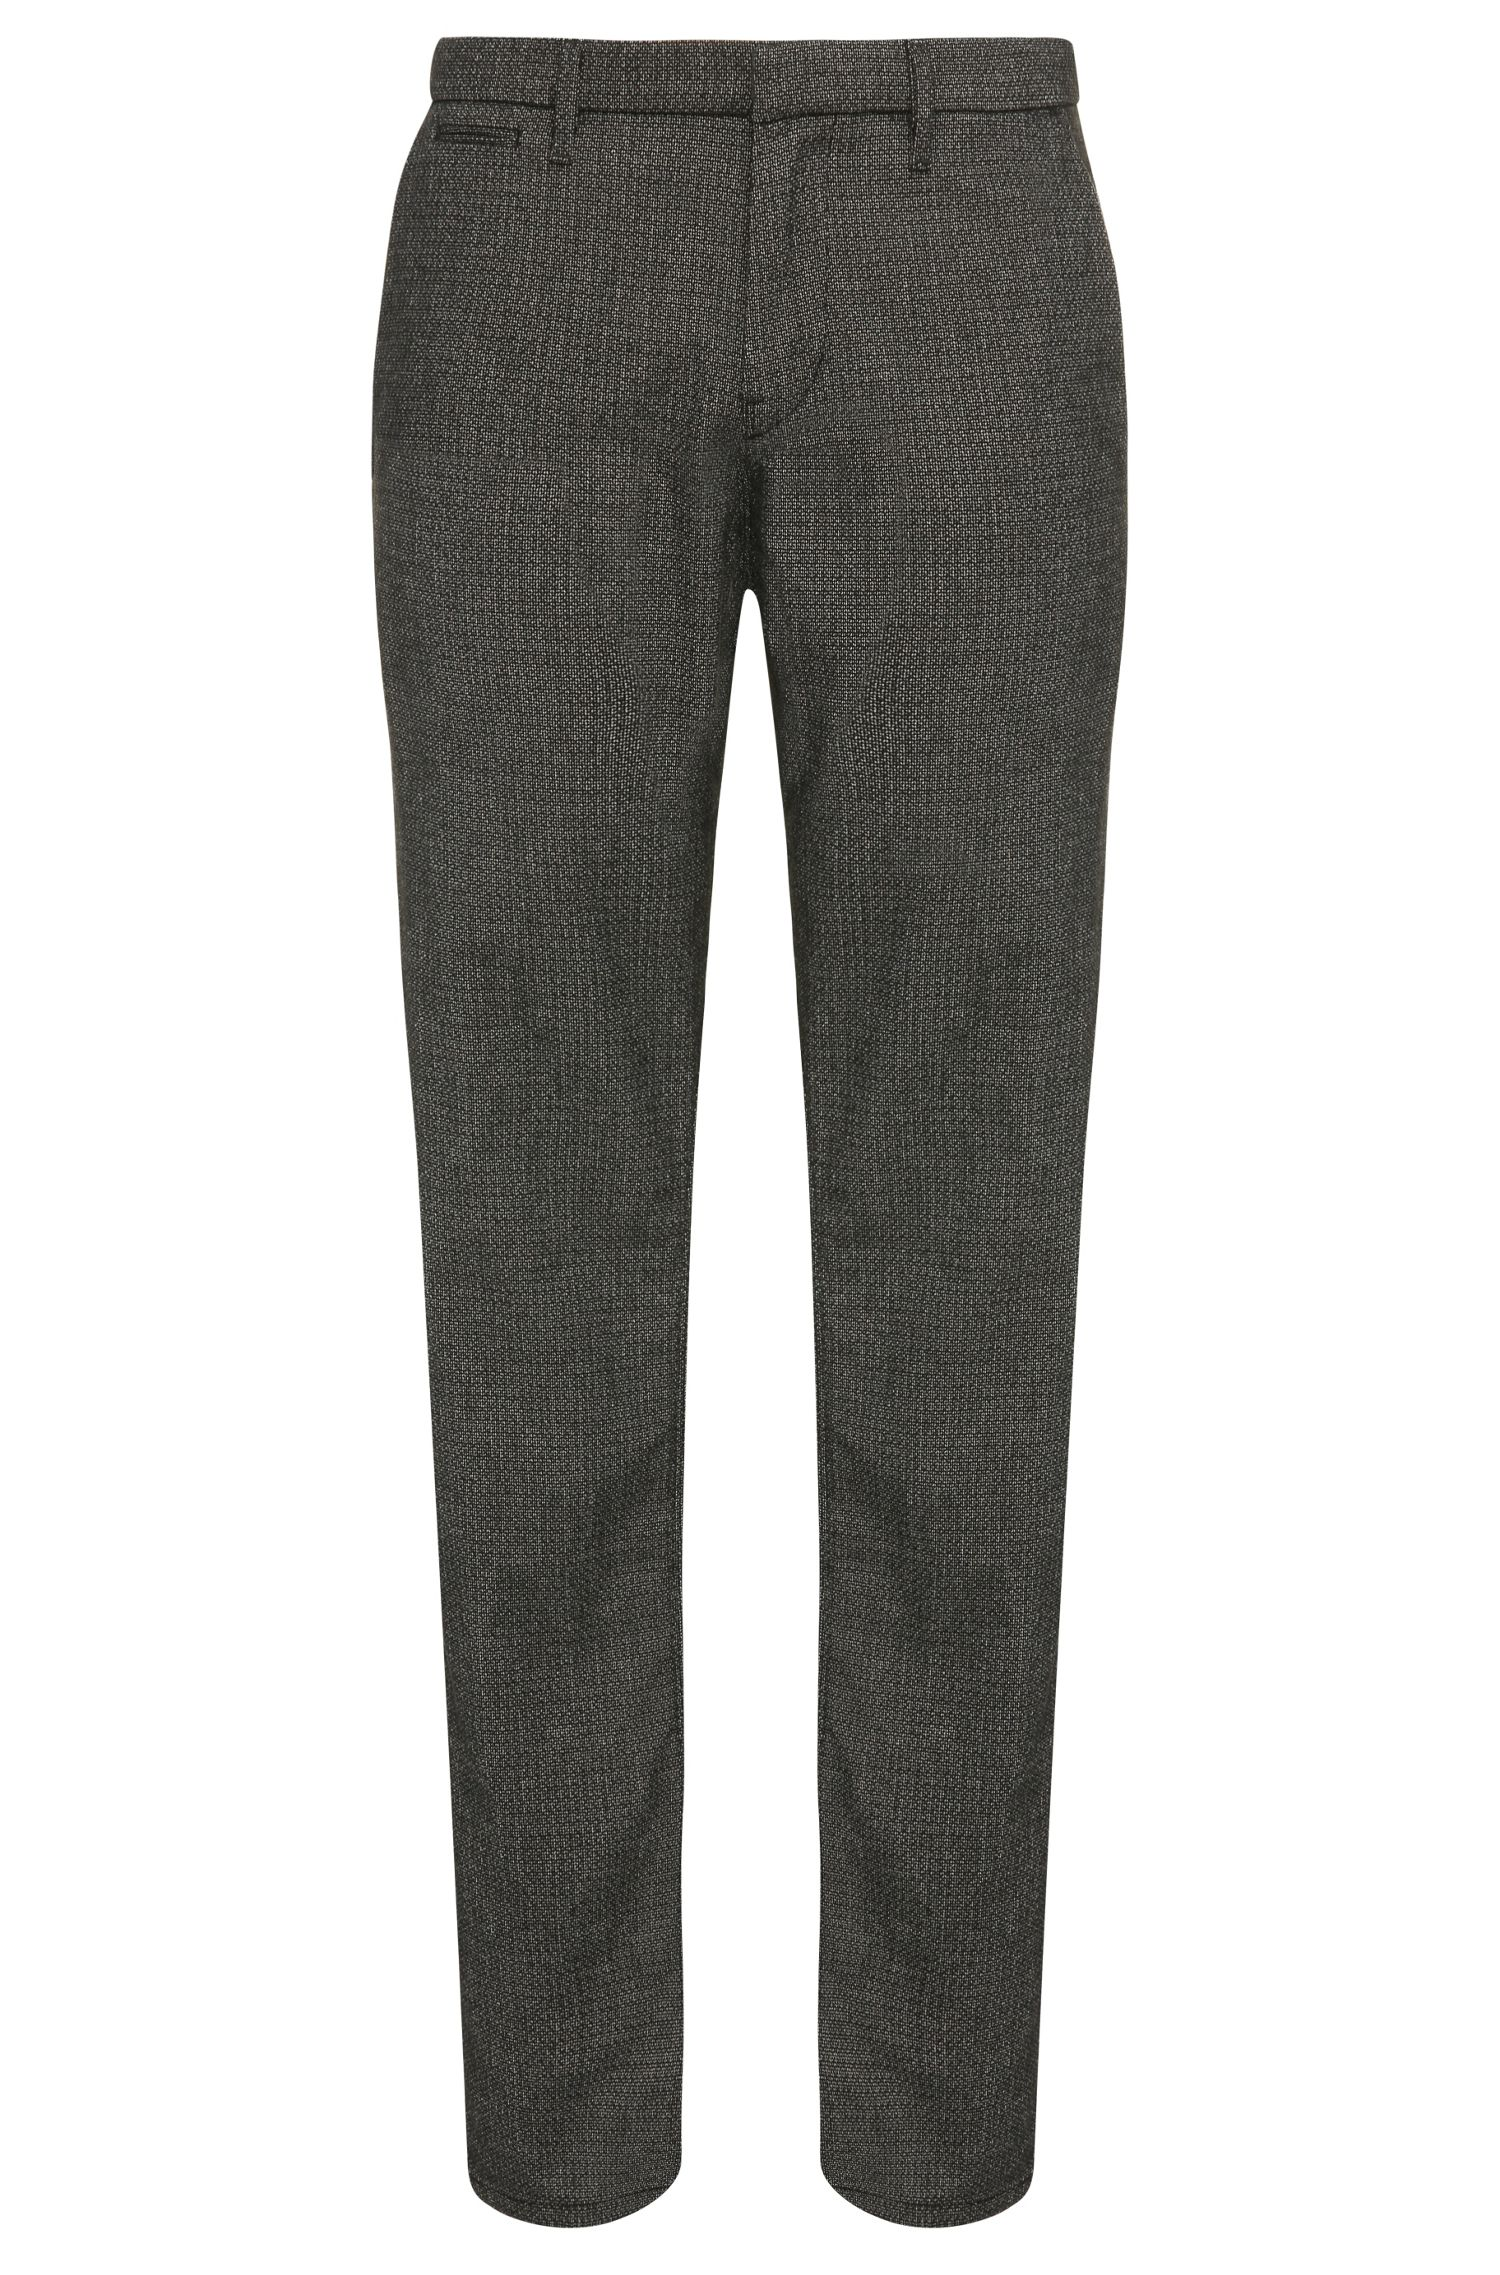 'Slim-W' | Slim Fit, Stretch Cotton Blend Trousers